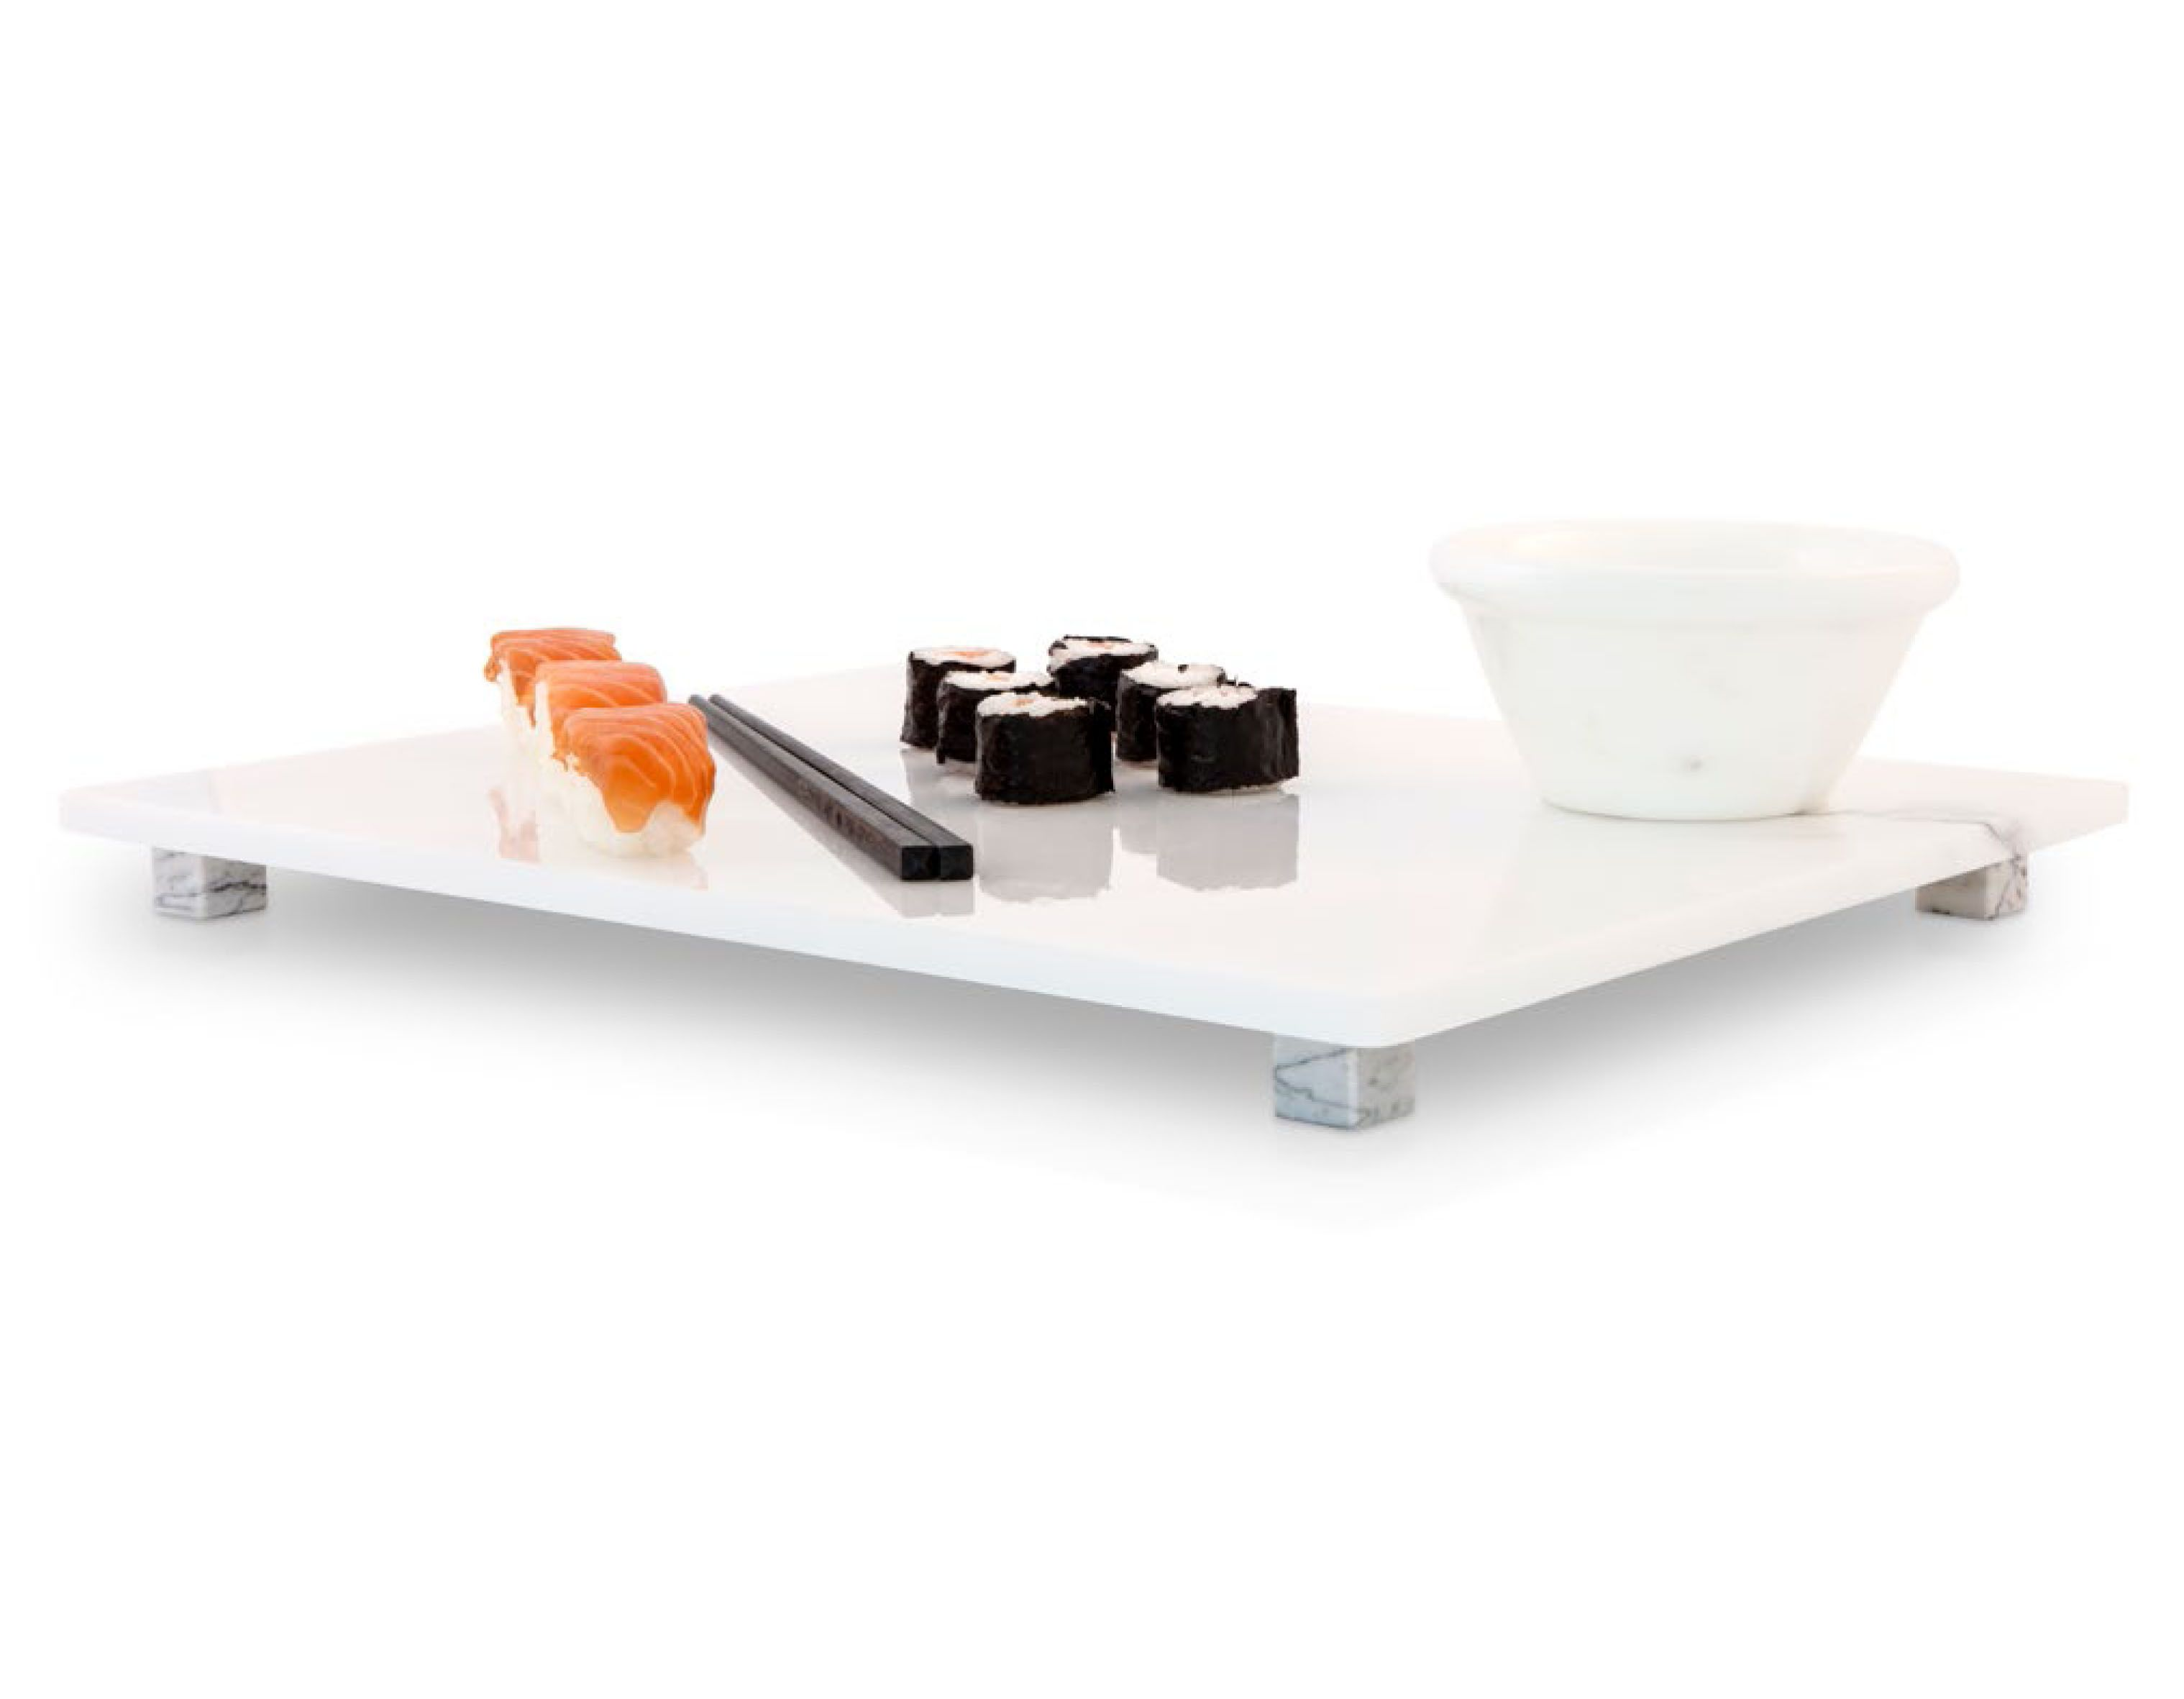 Kitchen Accessories White Marble Sushi Plate 40x30 Crockery Utensils Kitchen